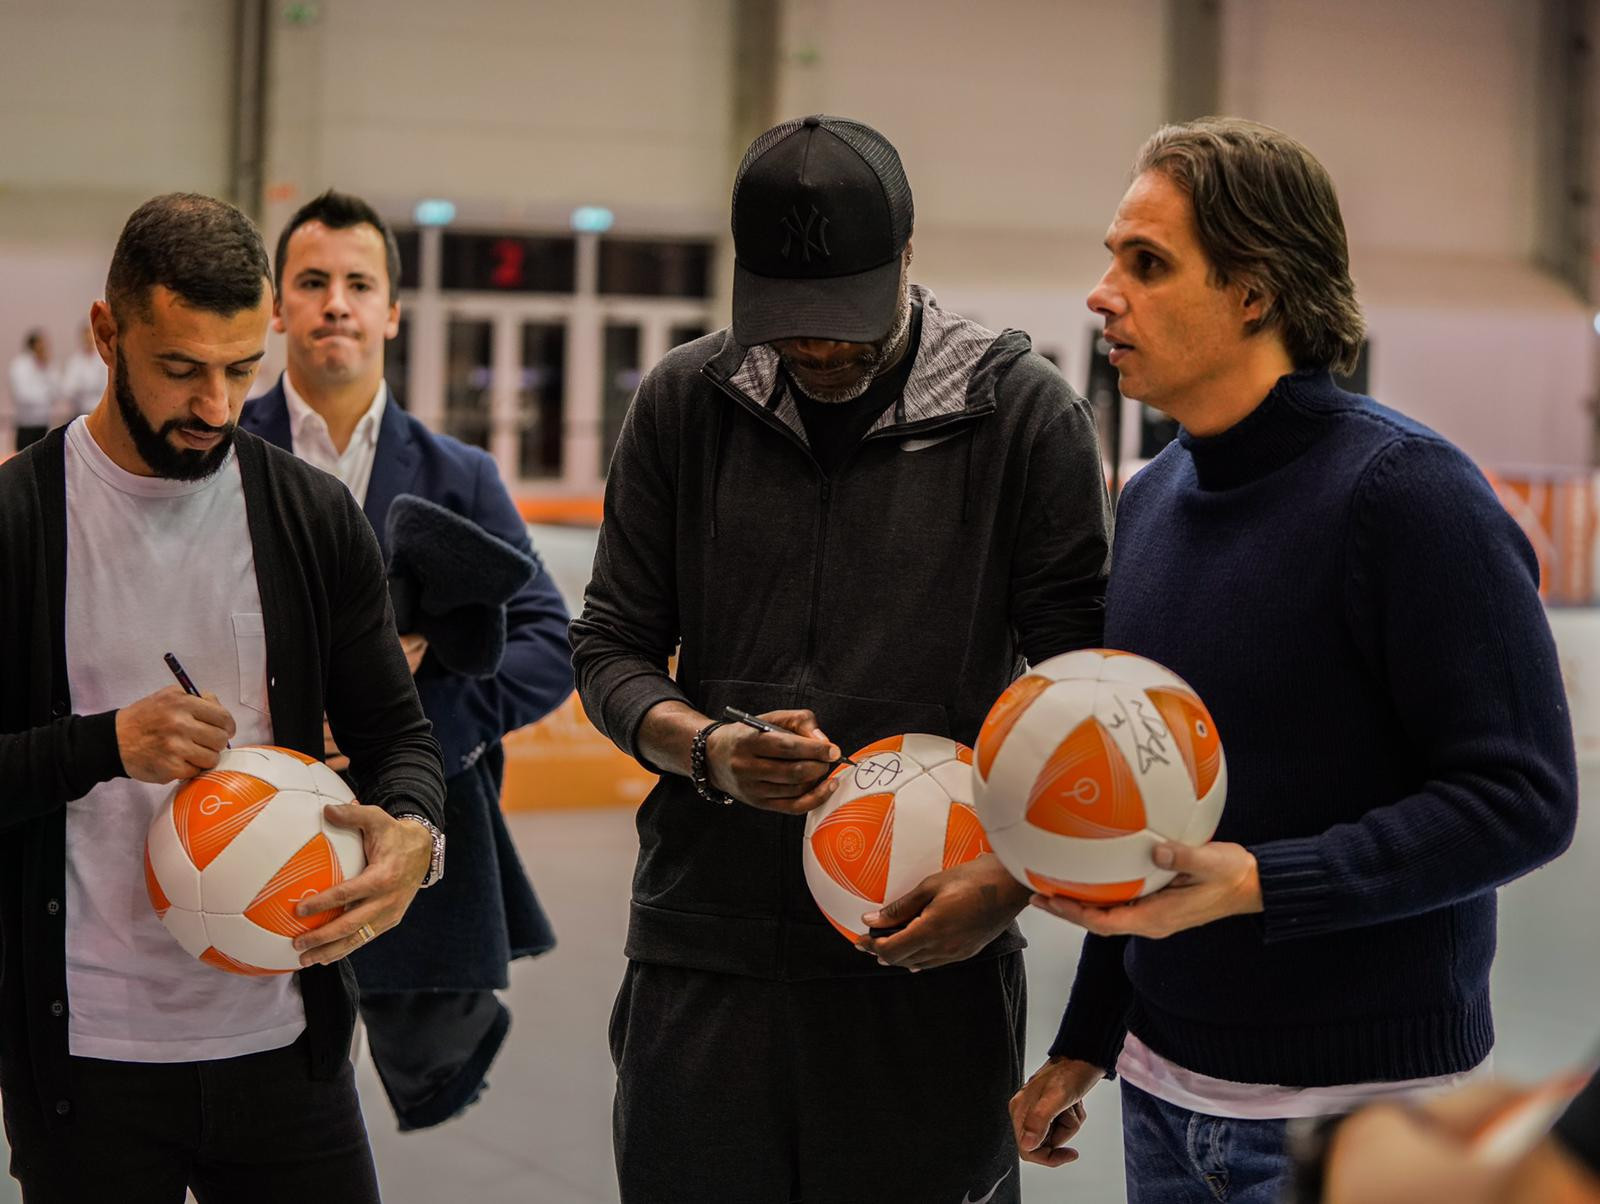 The former footballers gave autographs and had photos with fans ©FITEQ